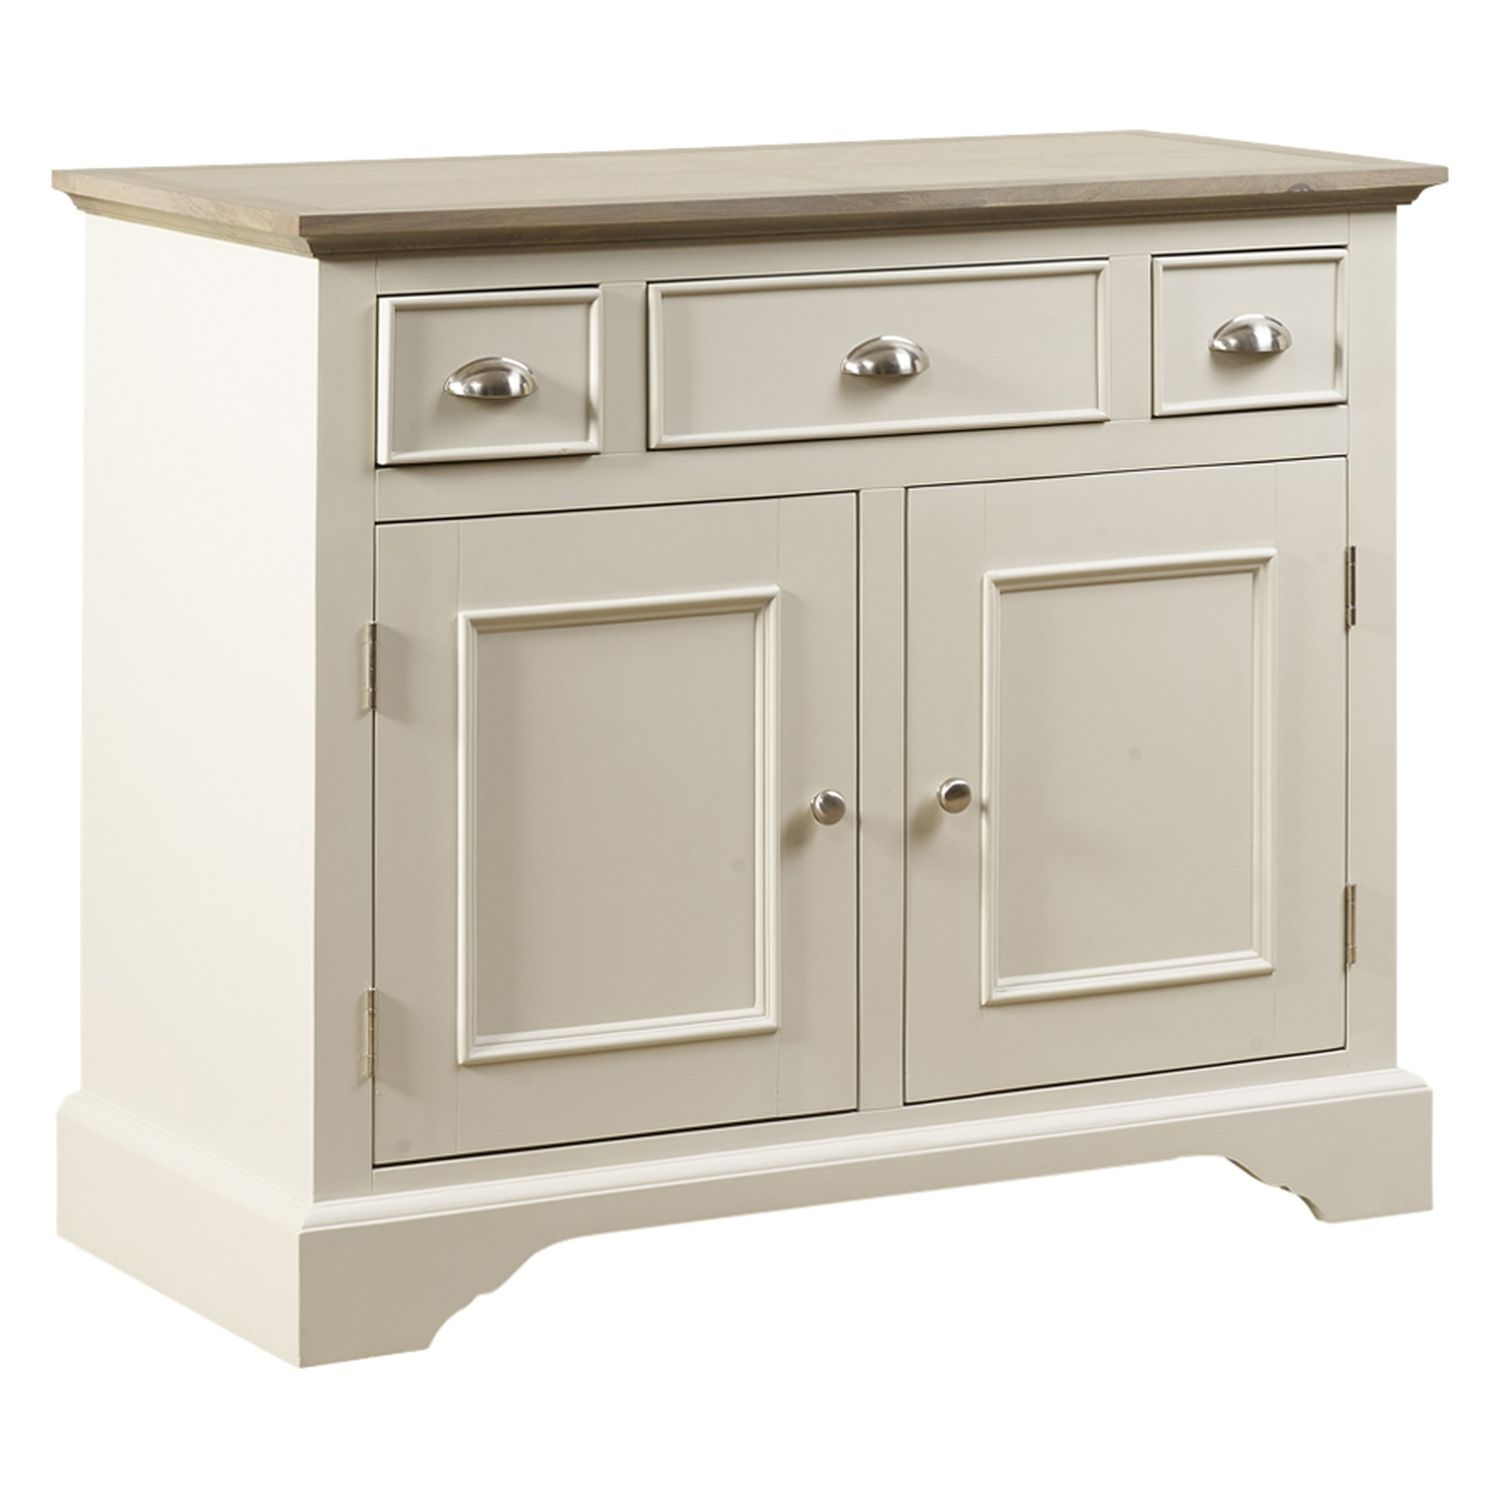 Image of Casa Lille Small Sideboard